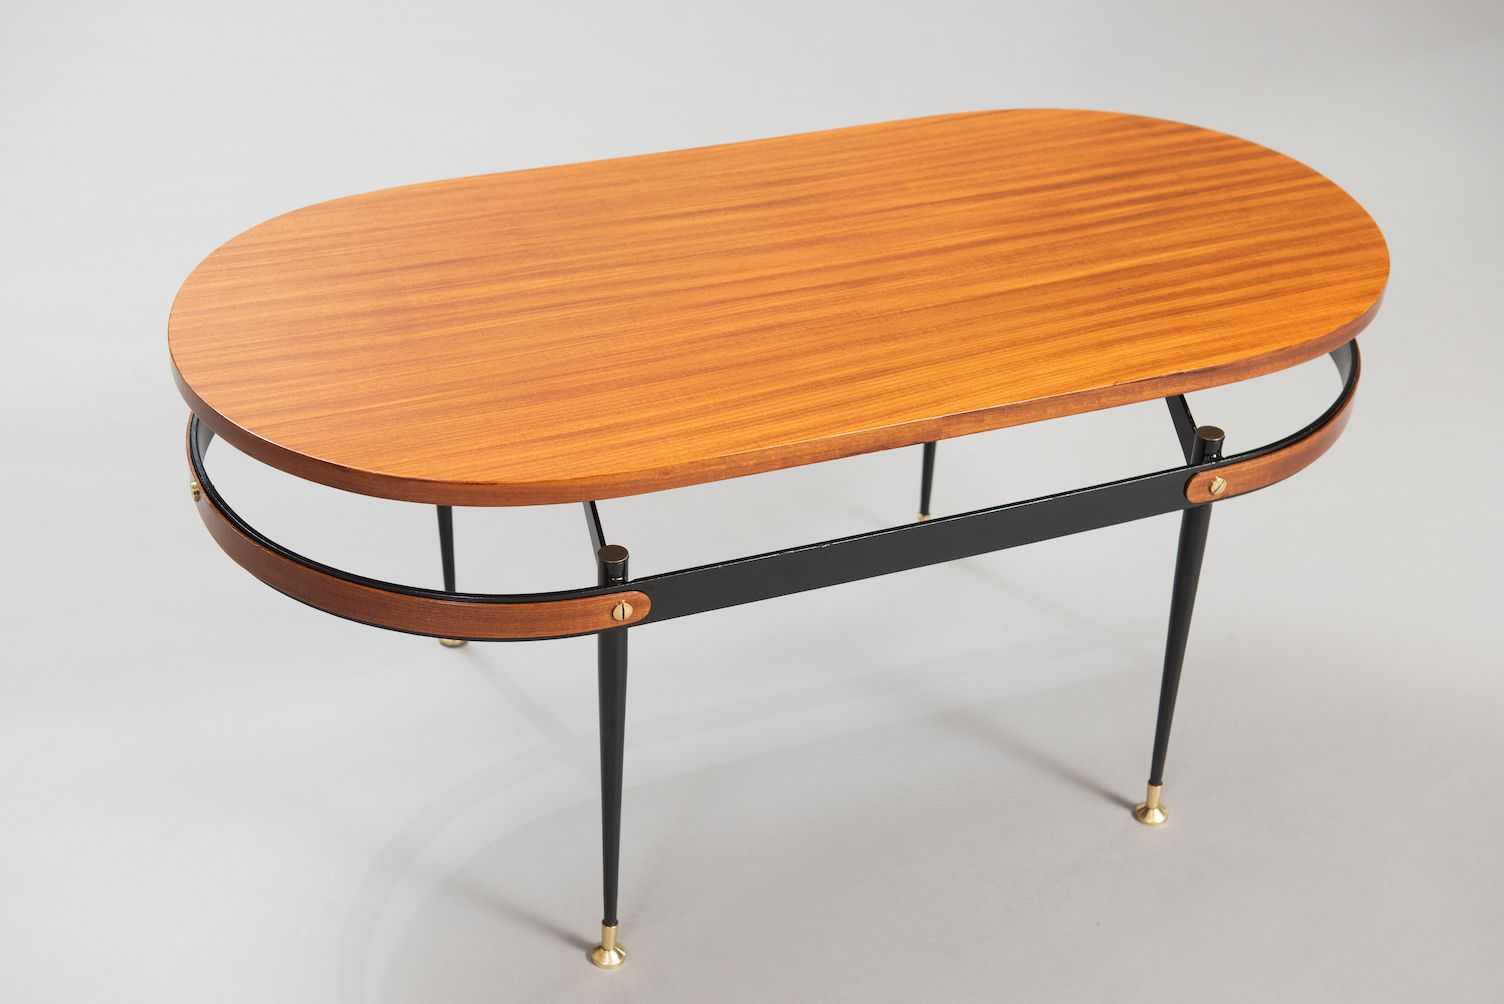 Table basse mid century en teck et m tal italie en vente for Table basse teck et metal